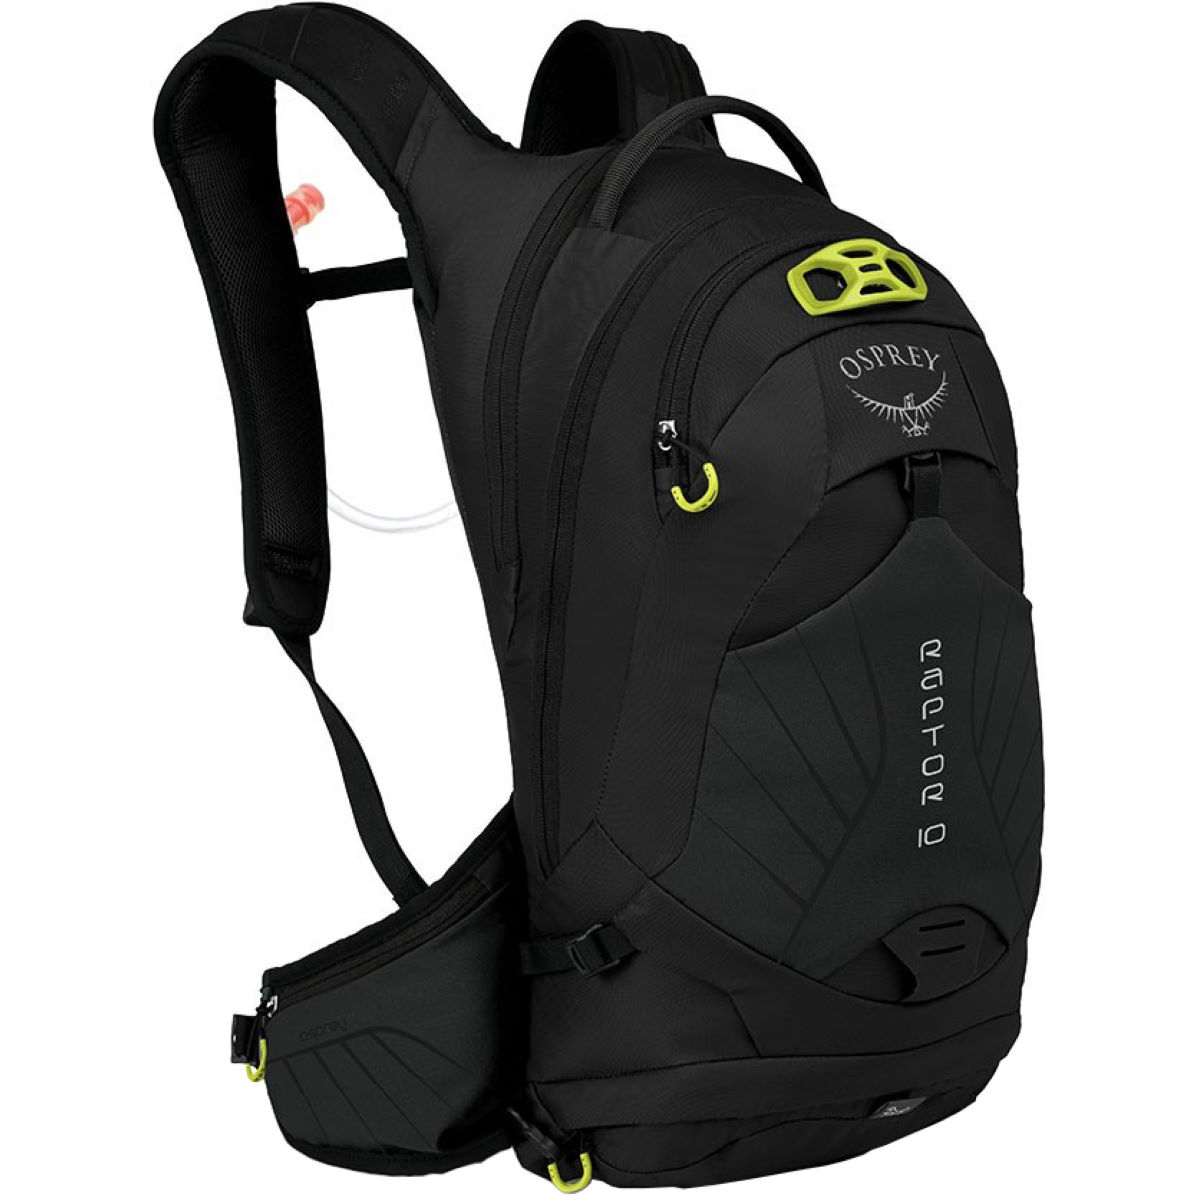 Osprey Osprey Raptor 10 Hydration Pack   Hydration Packs